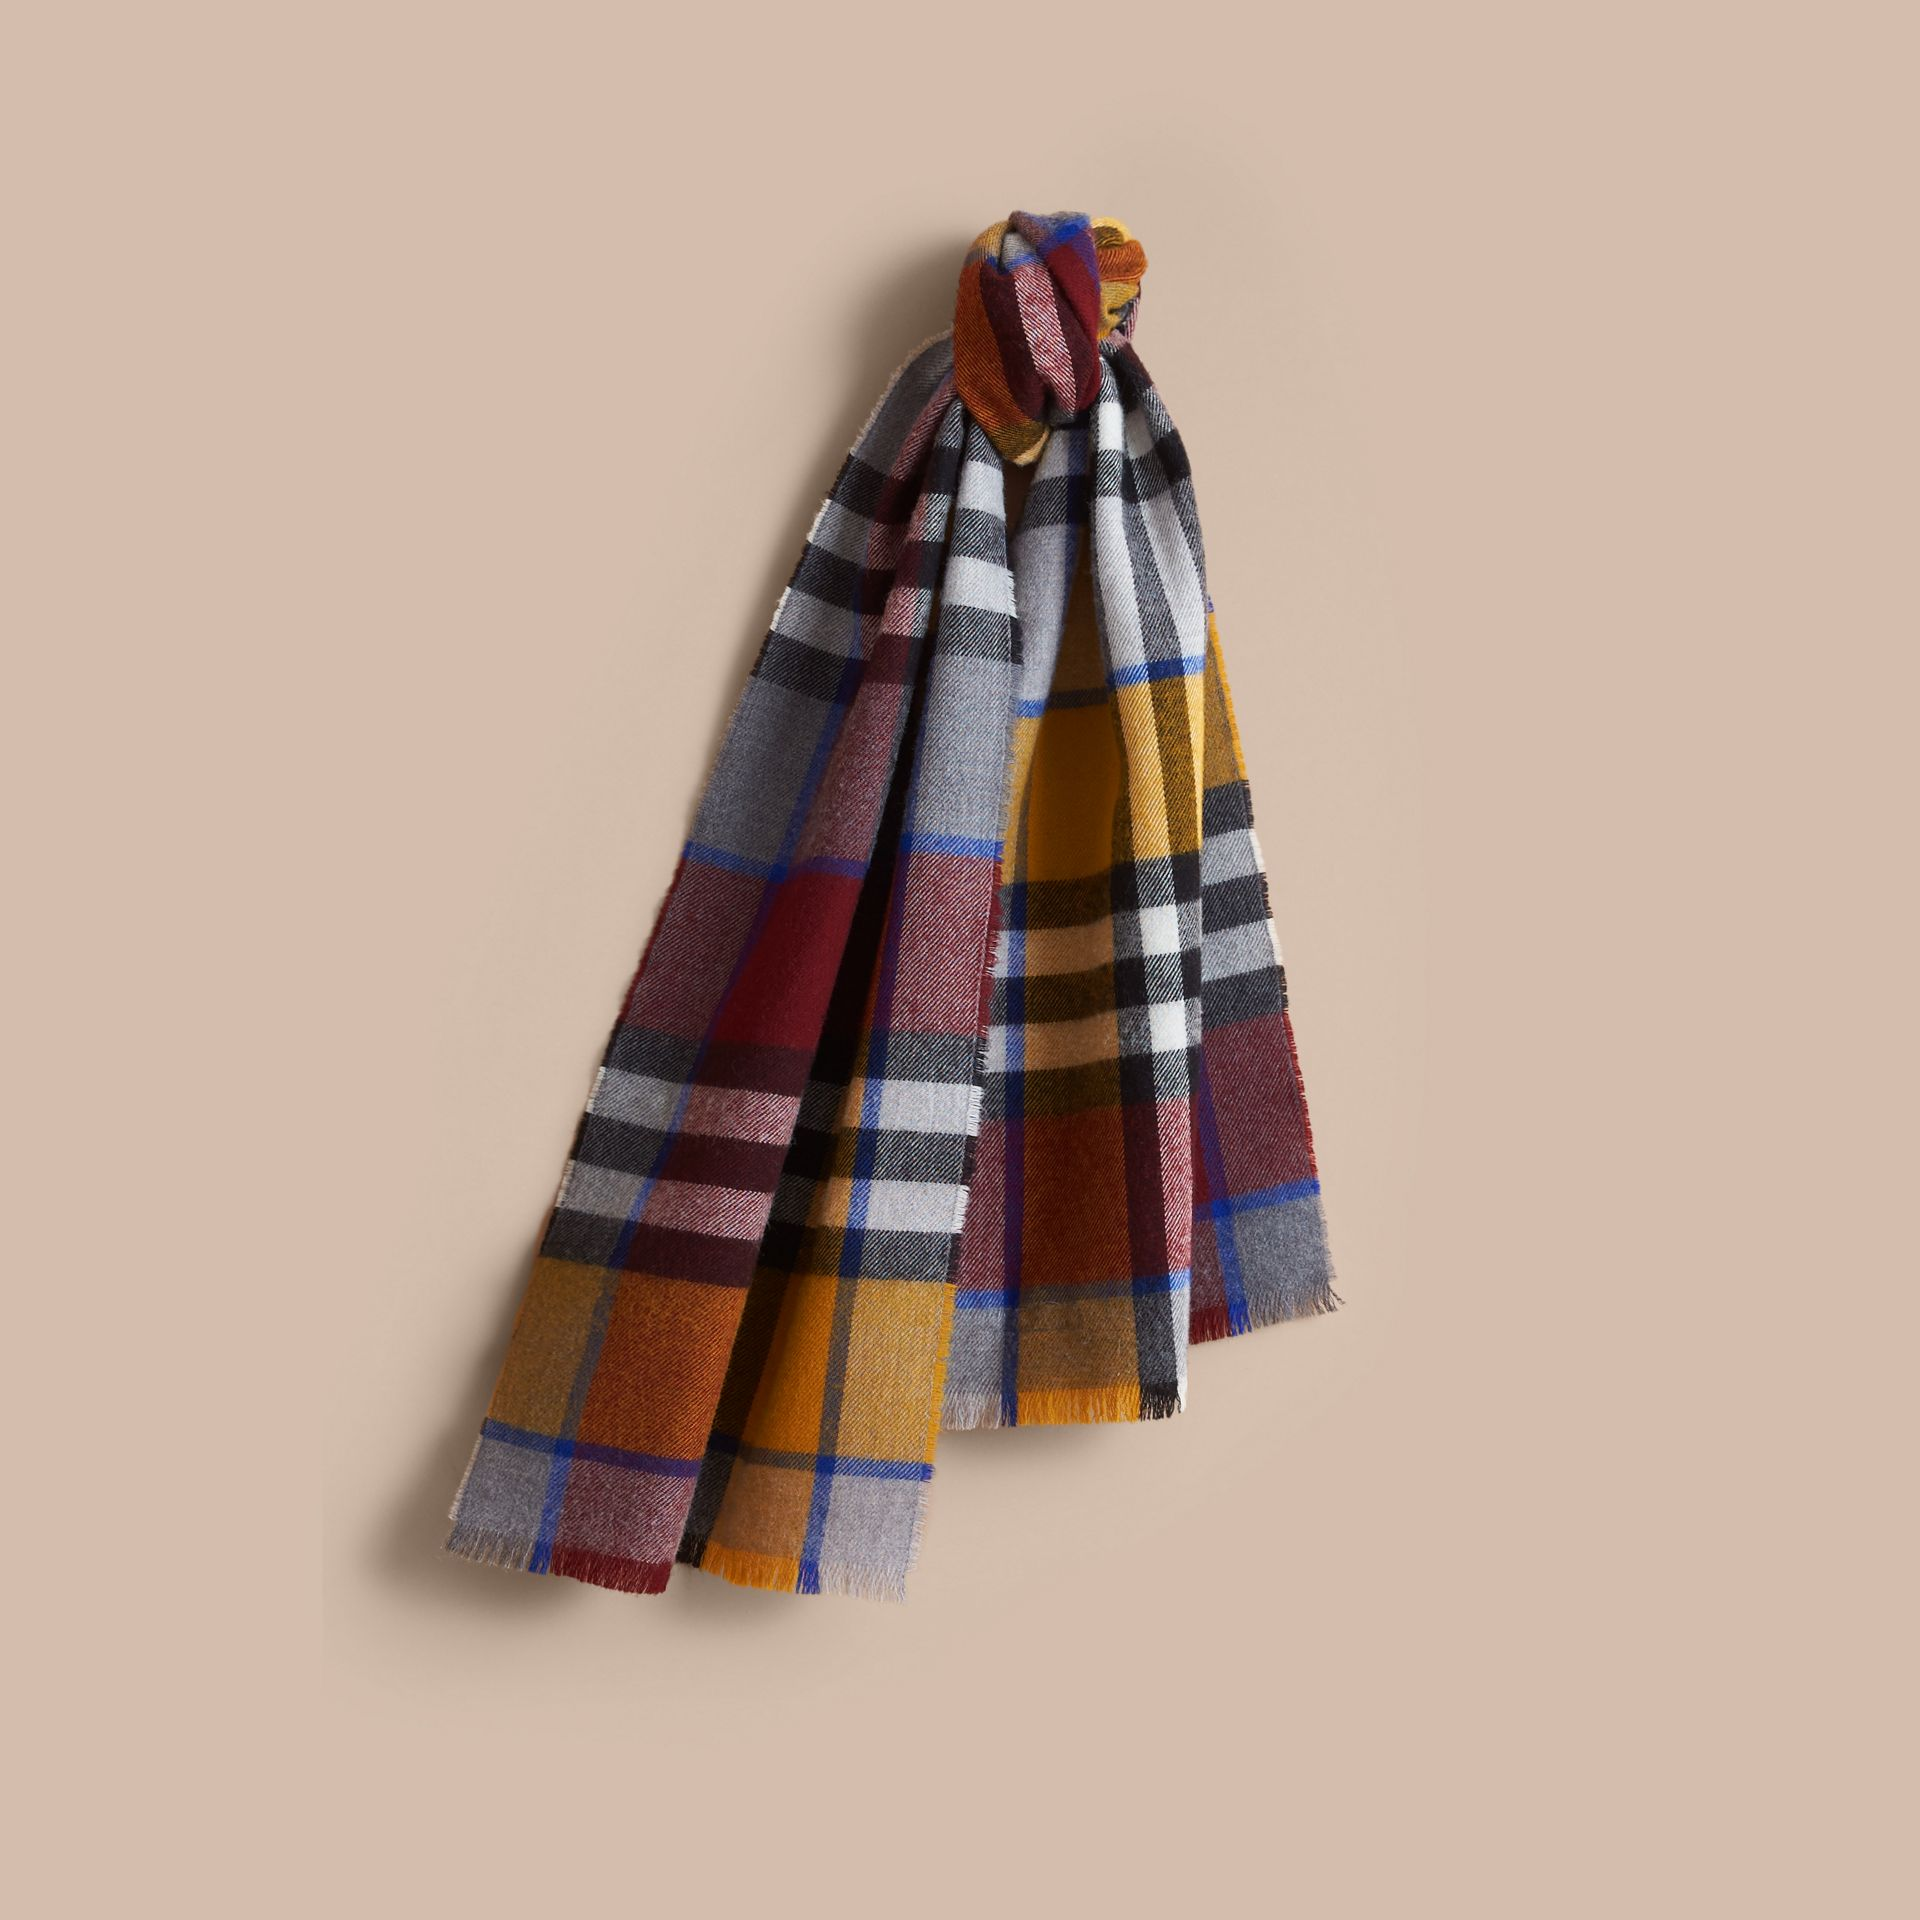 Overdyed Exploded Check Merino Wool Scarf in Burgndy/ochre Yellow | Burberry Canada - gallery image 1